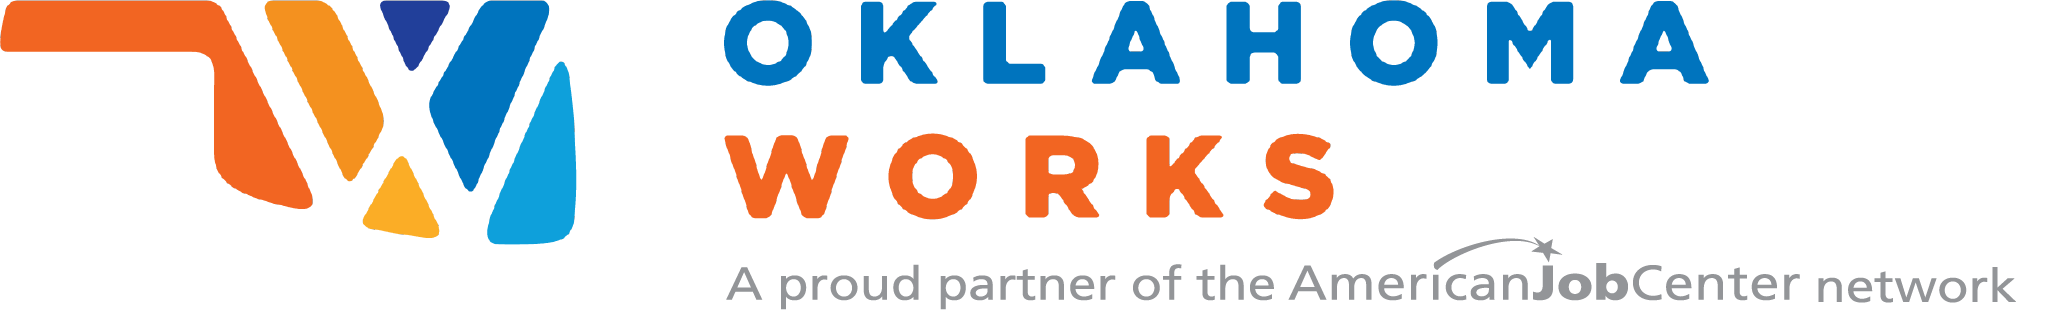 Oklahoma Works - A Proud Partner of the American Job Center Network